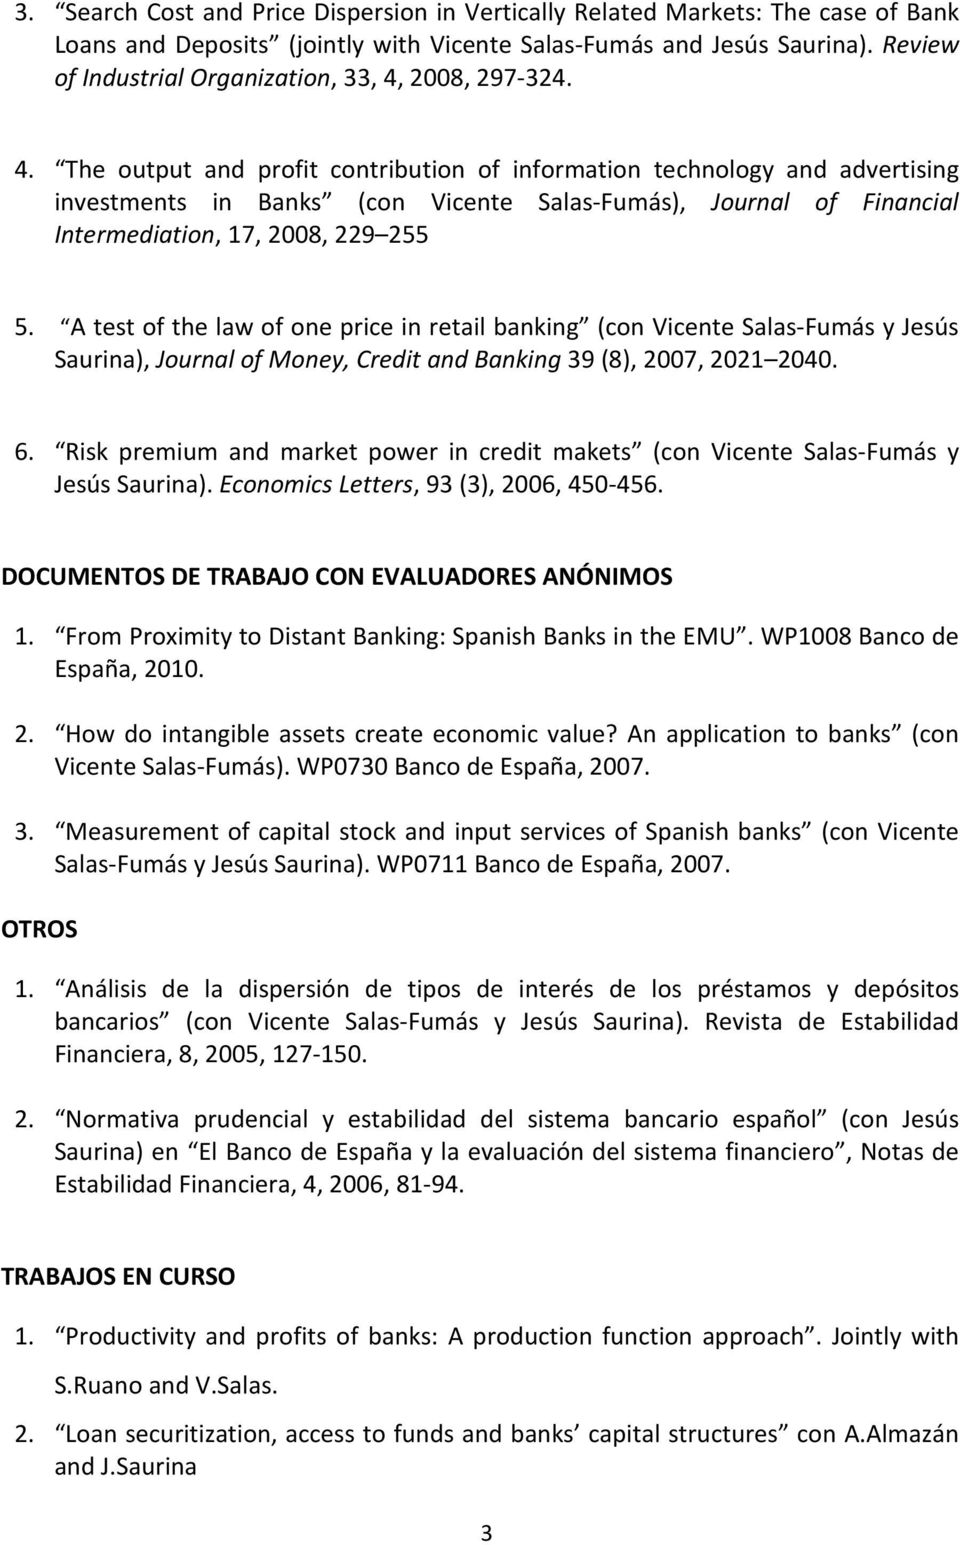 2008, 297-324. 4. The output and profit contribution of information technology and advertising investments in Banks (con Vicente Salas-Fumás), Journal of Financial Intermediation, 17, 2008, 229 255 5.